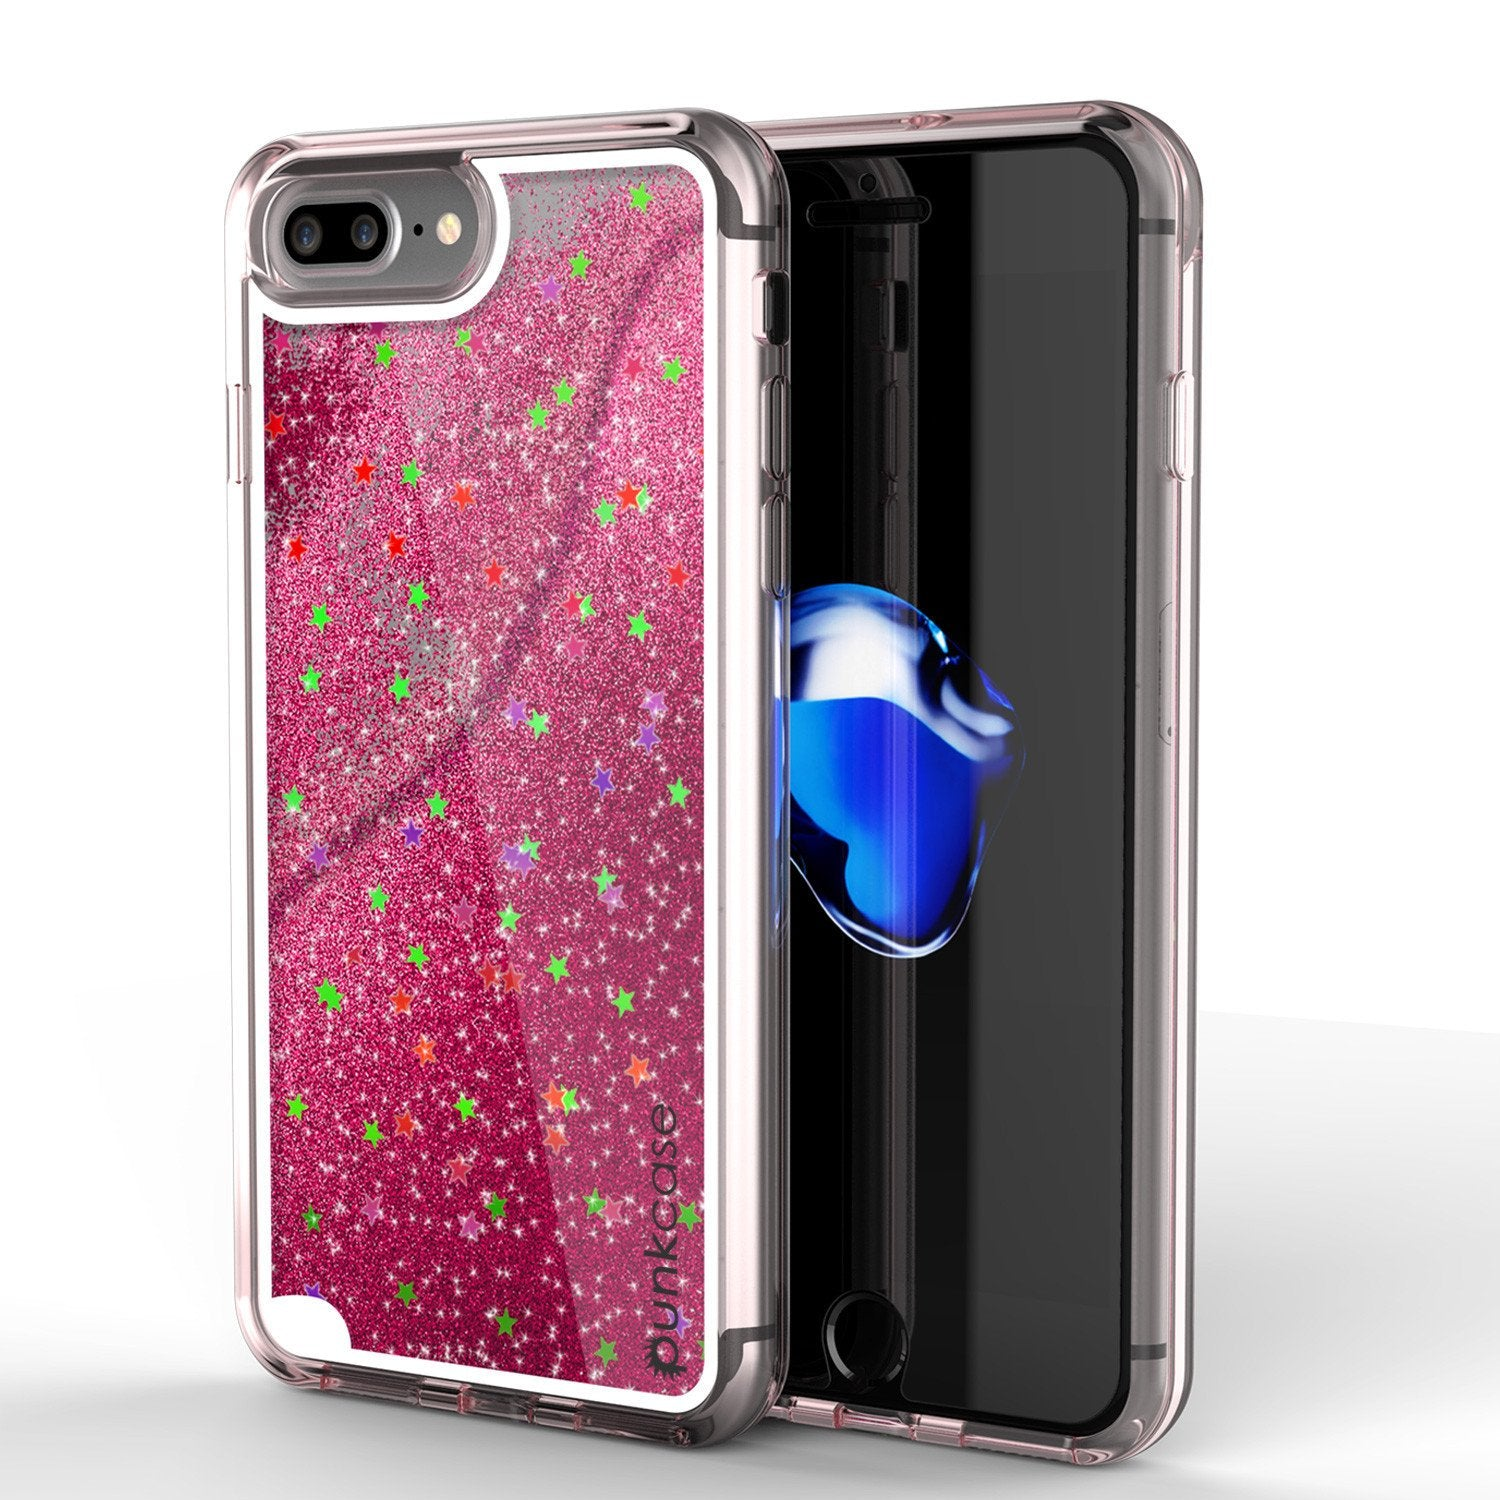 iPhone 7 Plus Case, Punkcase [Liquid Pink Series] Protective Dual Layer Floating Glitter Cover with lots of Bling & Sparkle + 0.3mm Tempered Glass Screen Protector for Apple iPhone 7s Plus